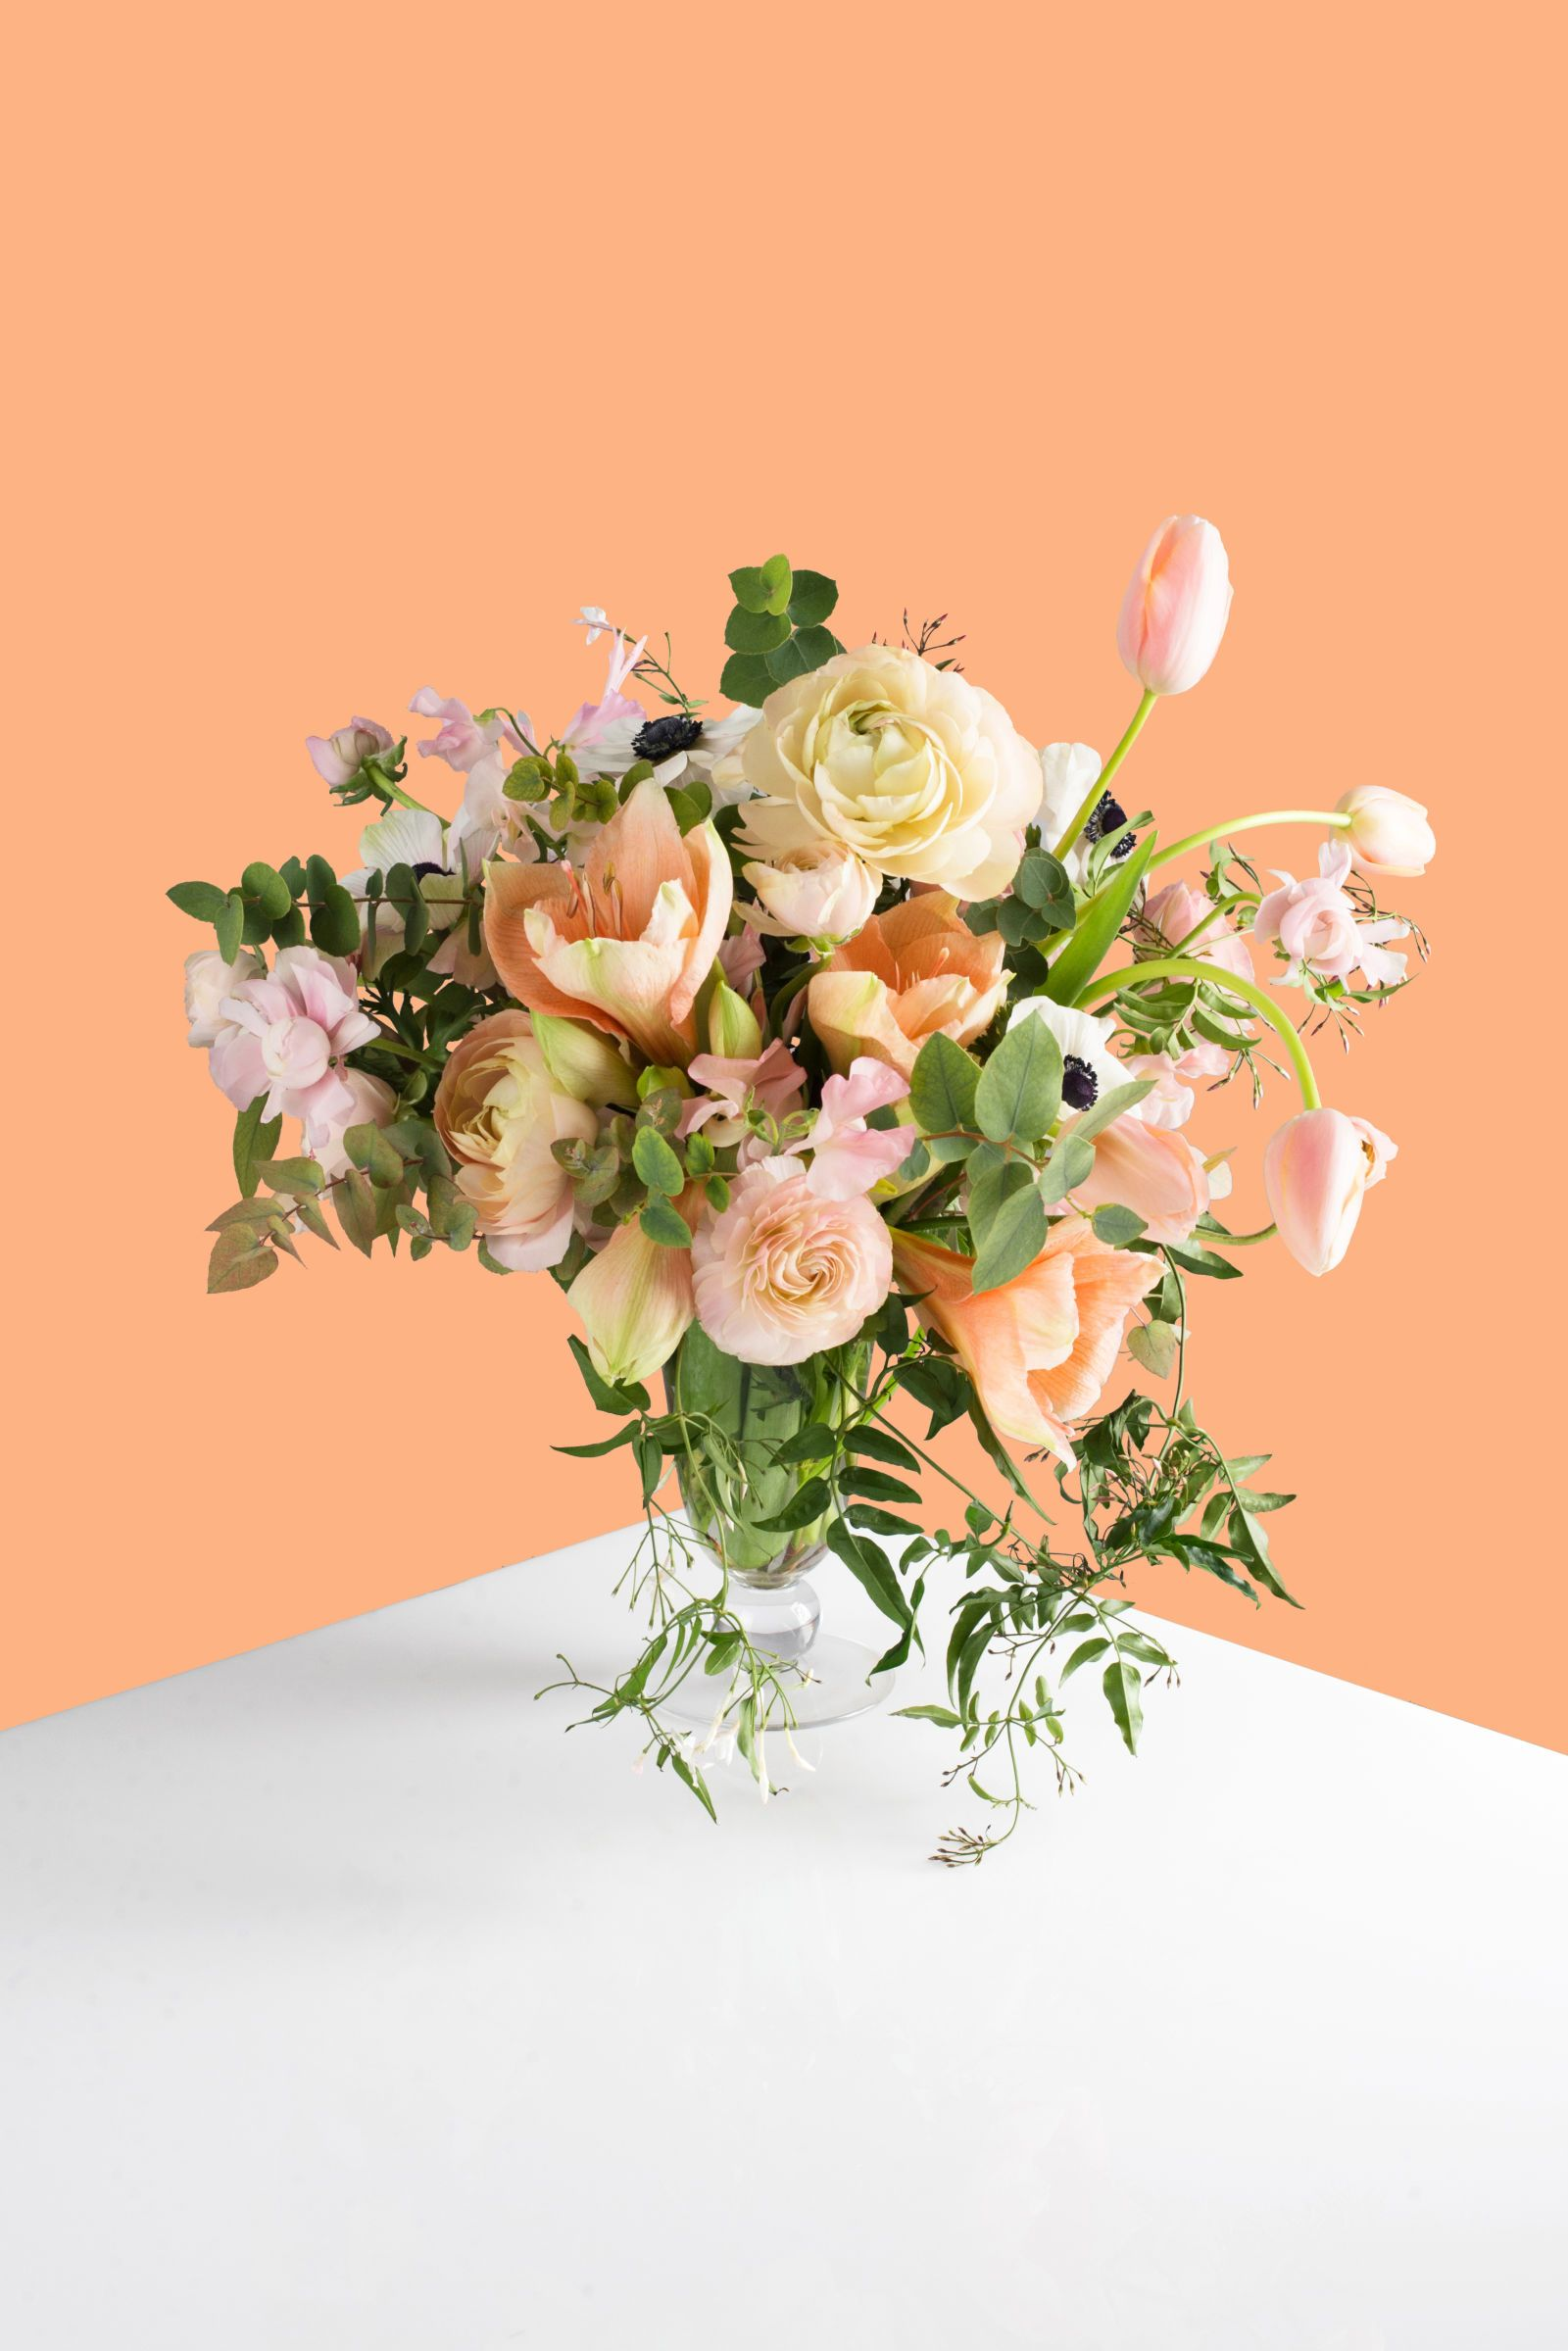 Valentines day flowers for the girl who turns her nose up at roses valentines day flowers for the girl who turns her nose up at roses izmirmasajfo